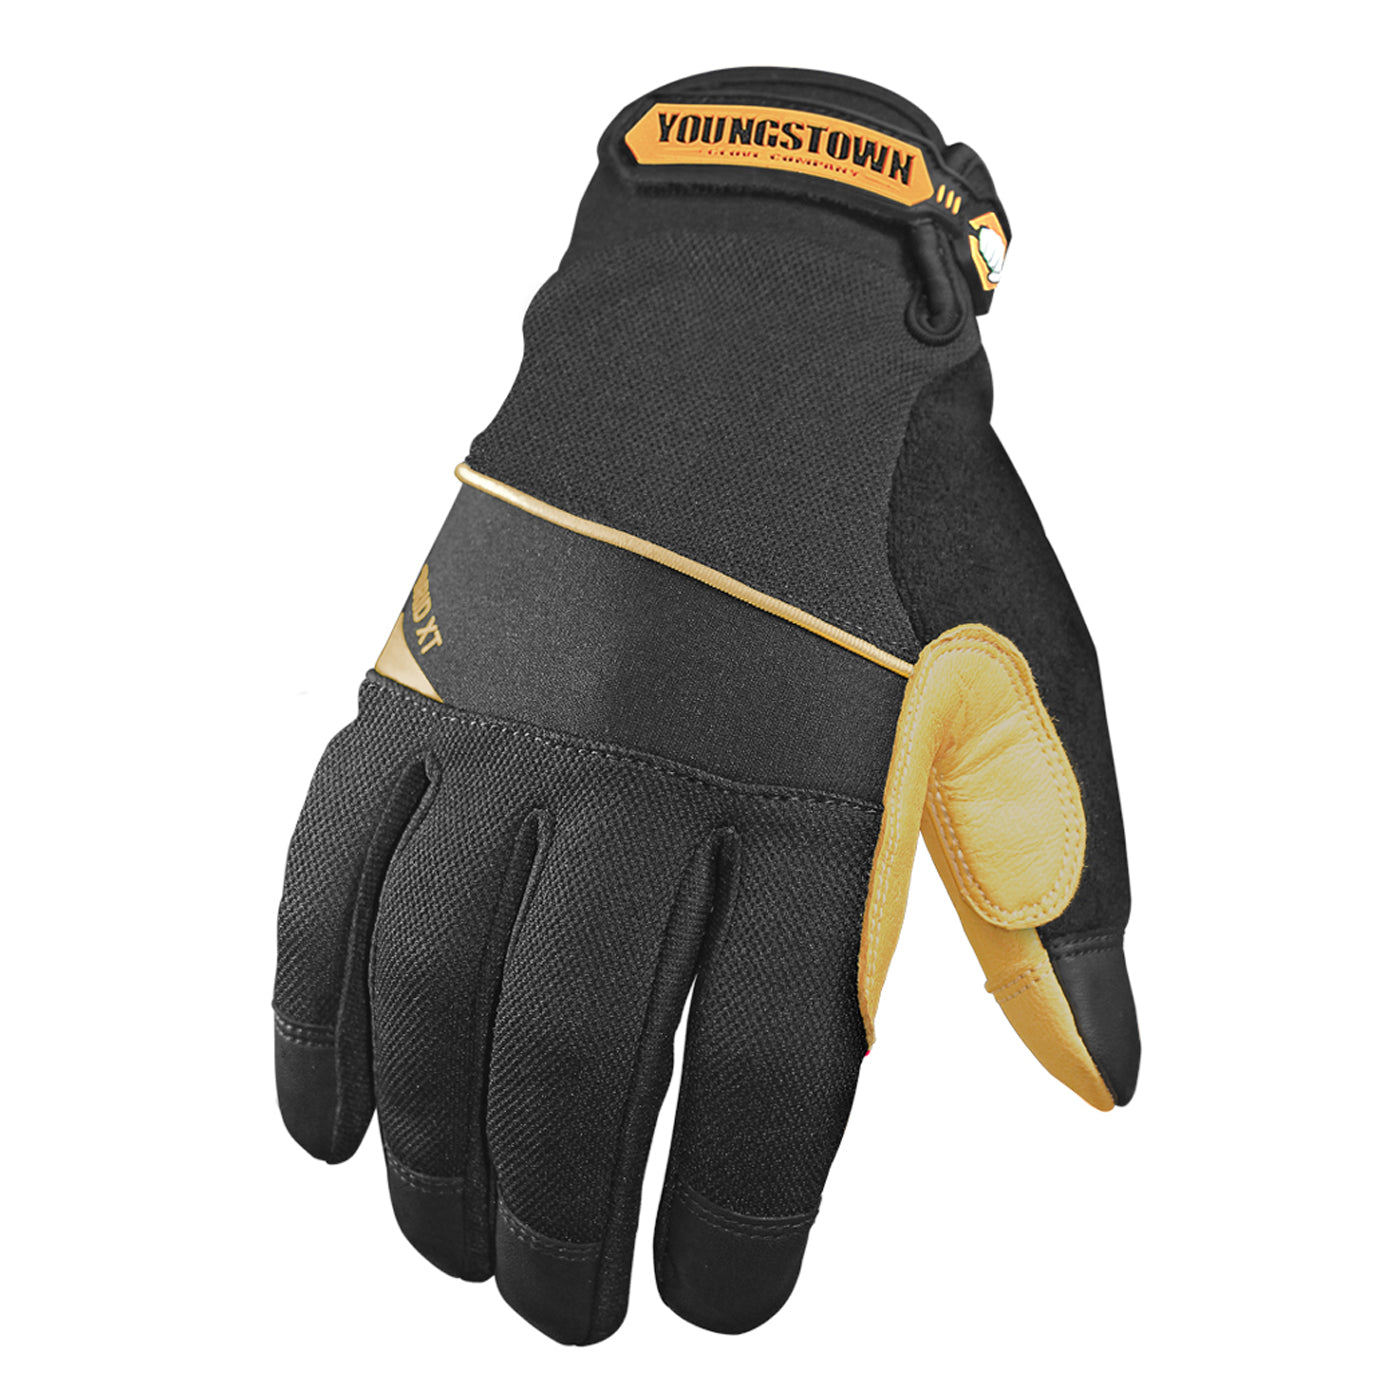 12-3185-70 Youngstown Hybrid XT Glove - Main image